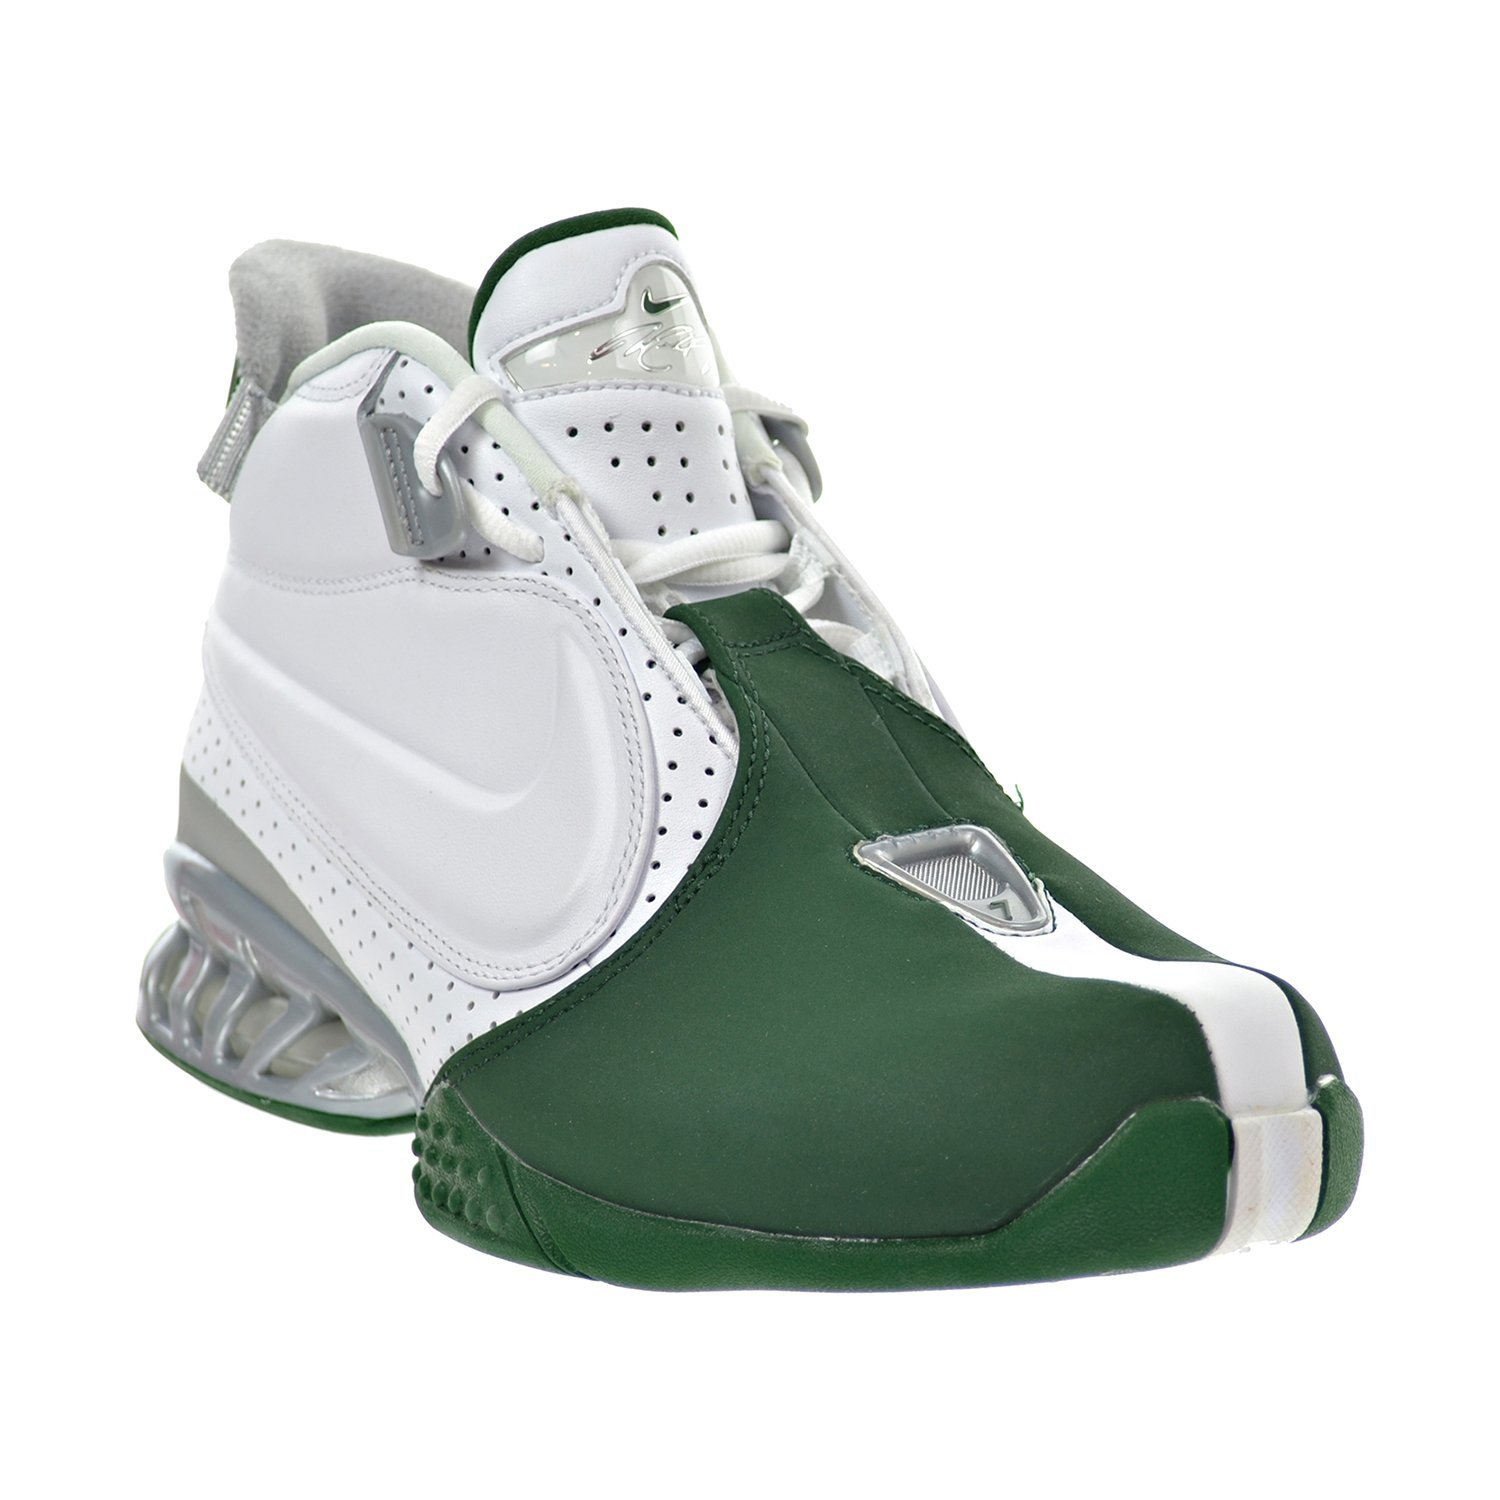 Amazon.com | Nike Air Zoom Vick II Men's Shoes White/Gorge Green/Metallic  Silver 599446-100 (8 D(M) US) | Fashion Sneakers